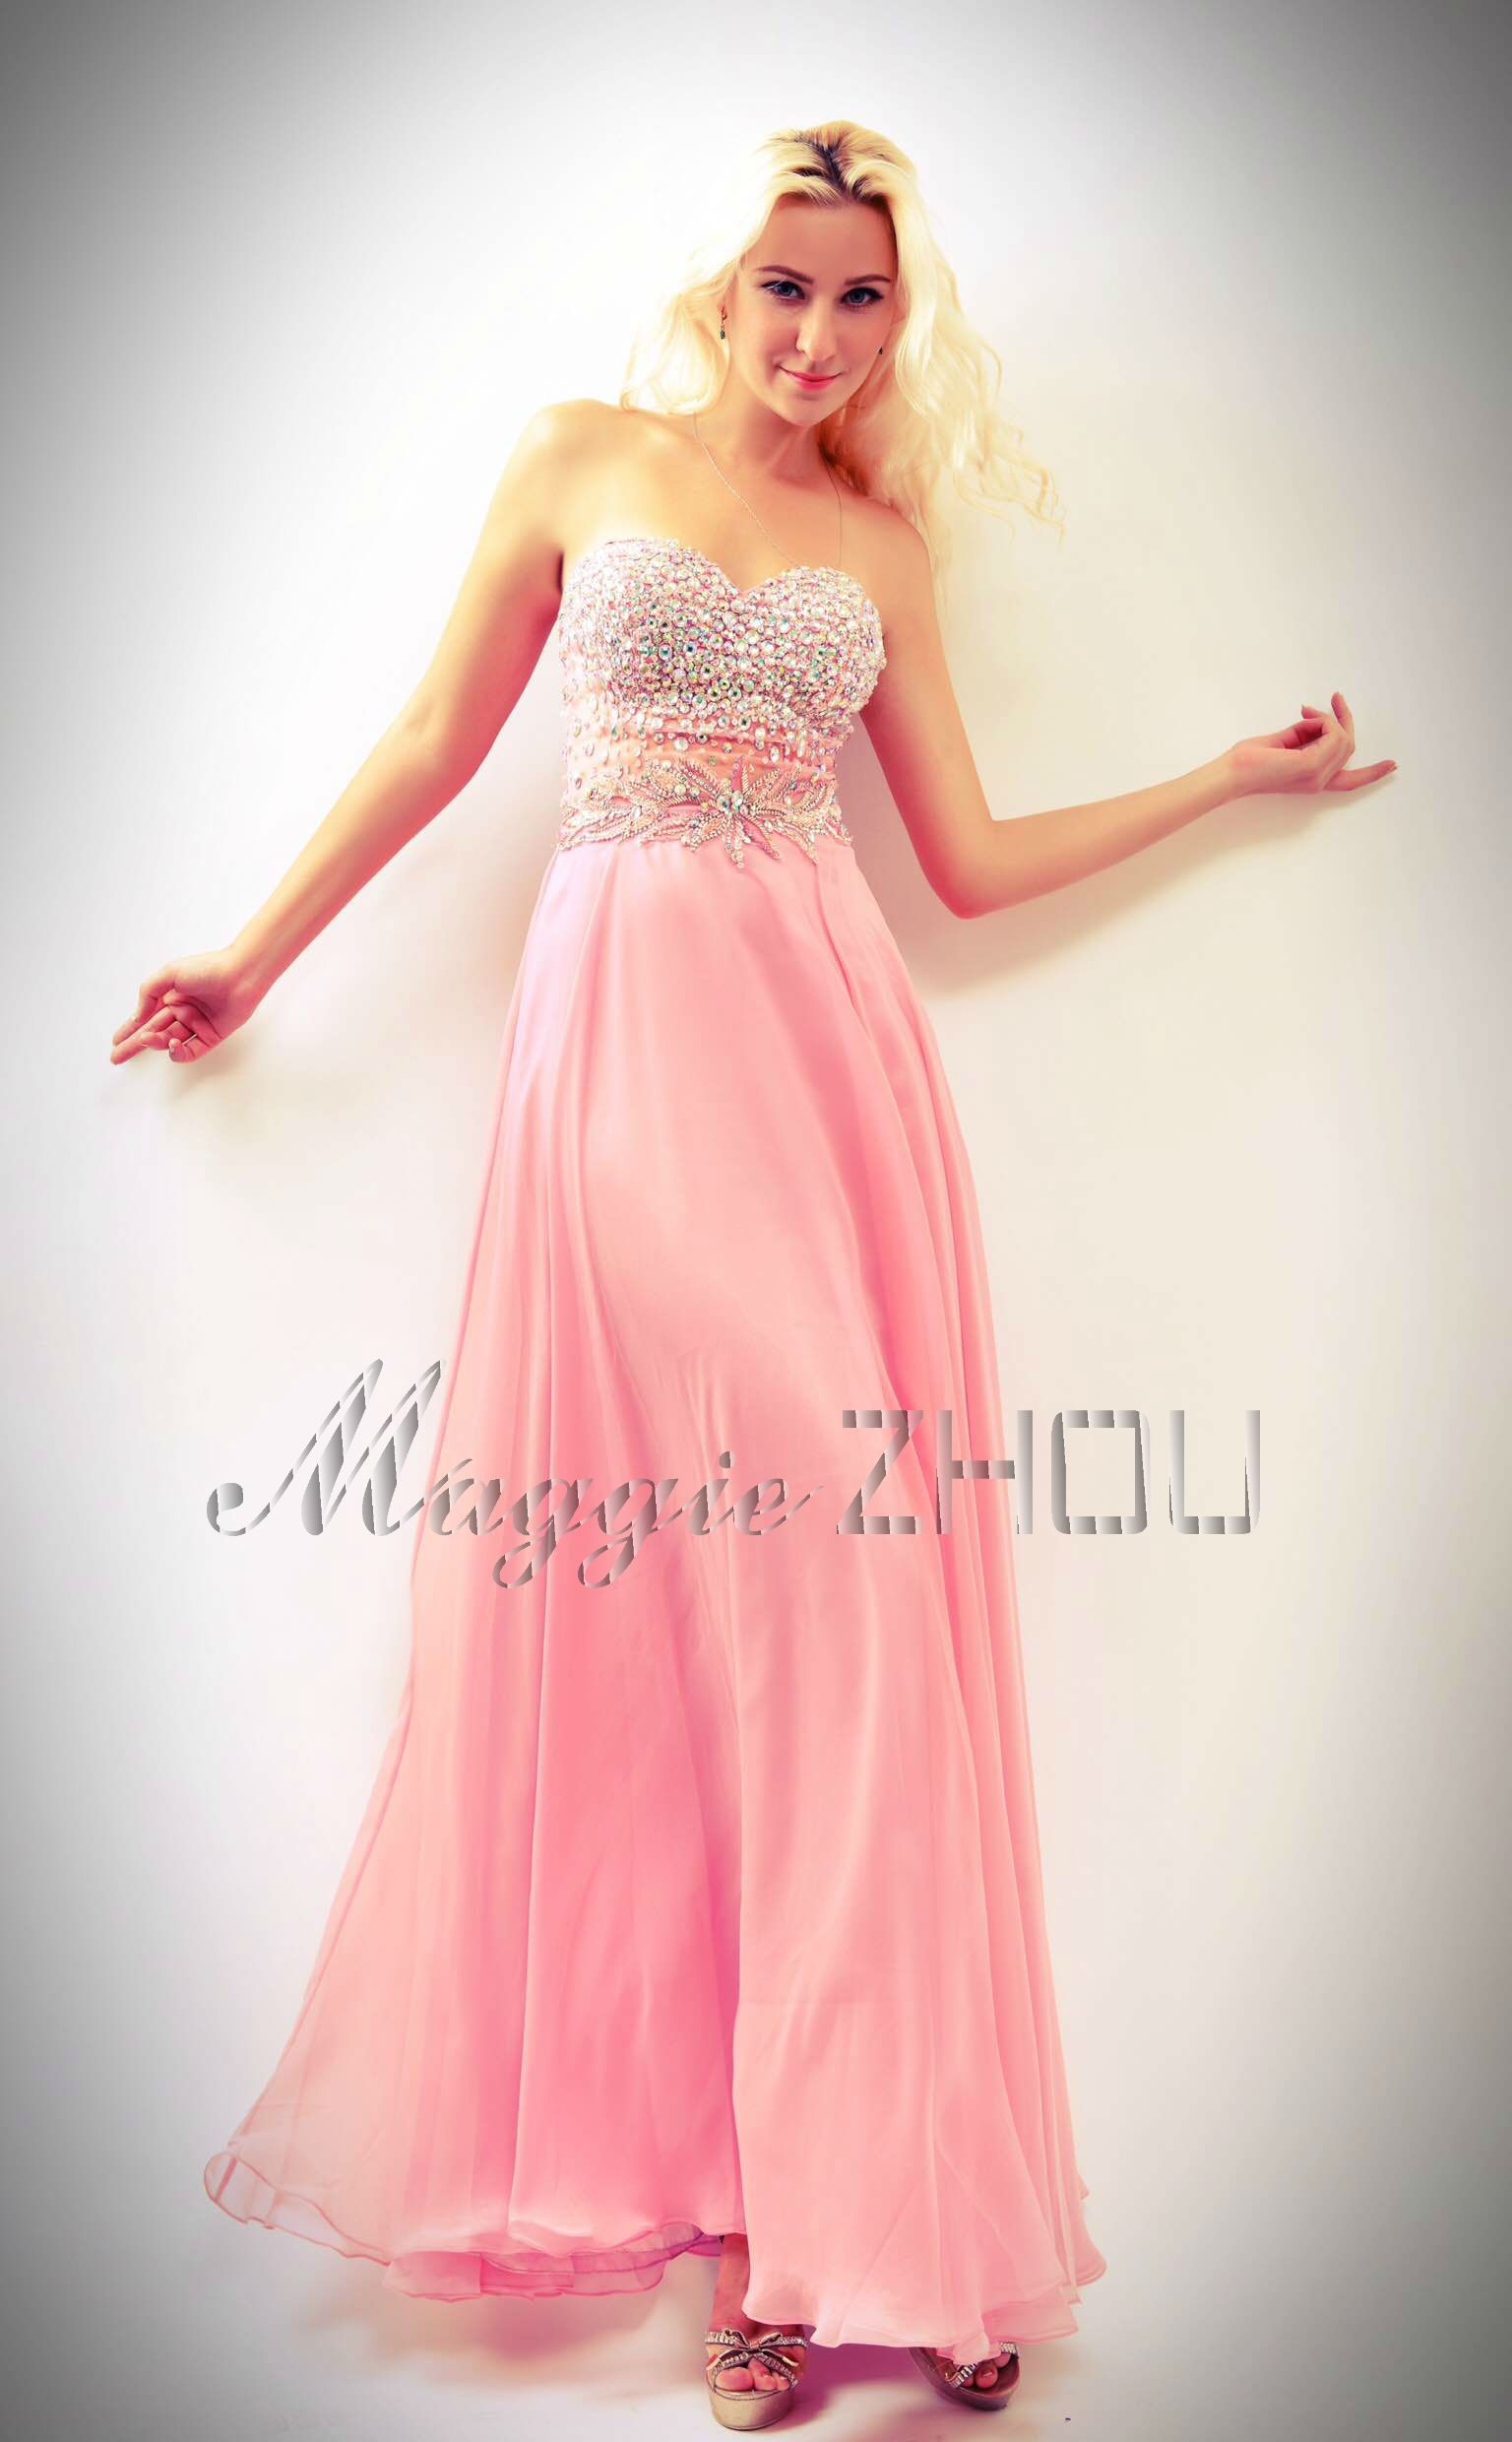 Stunning Maggie Zhou Prom Dress With Flowing Pink Skirt And Hand Beaded Sweetheart Neckline Higher Waistline Creates A Trim Silhouette Designed To Make You